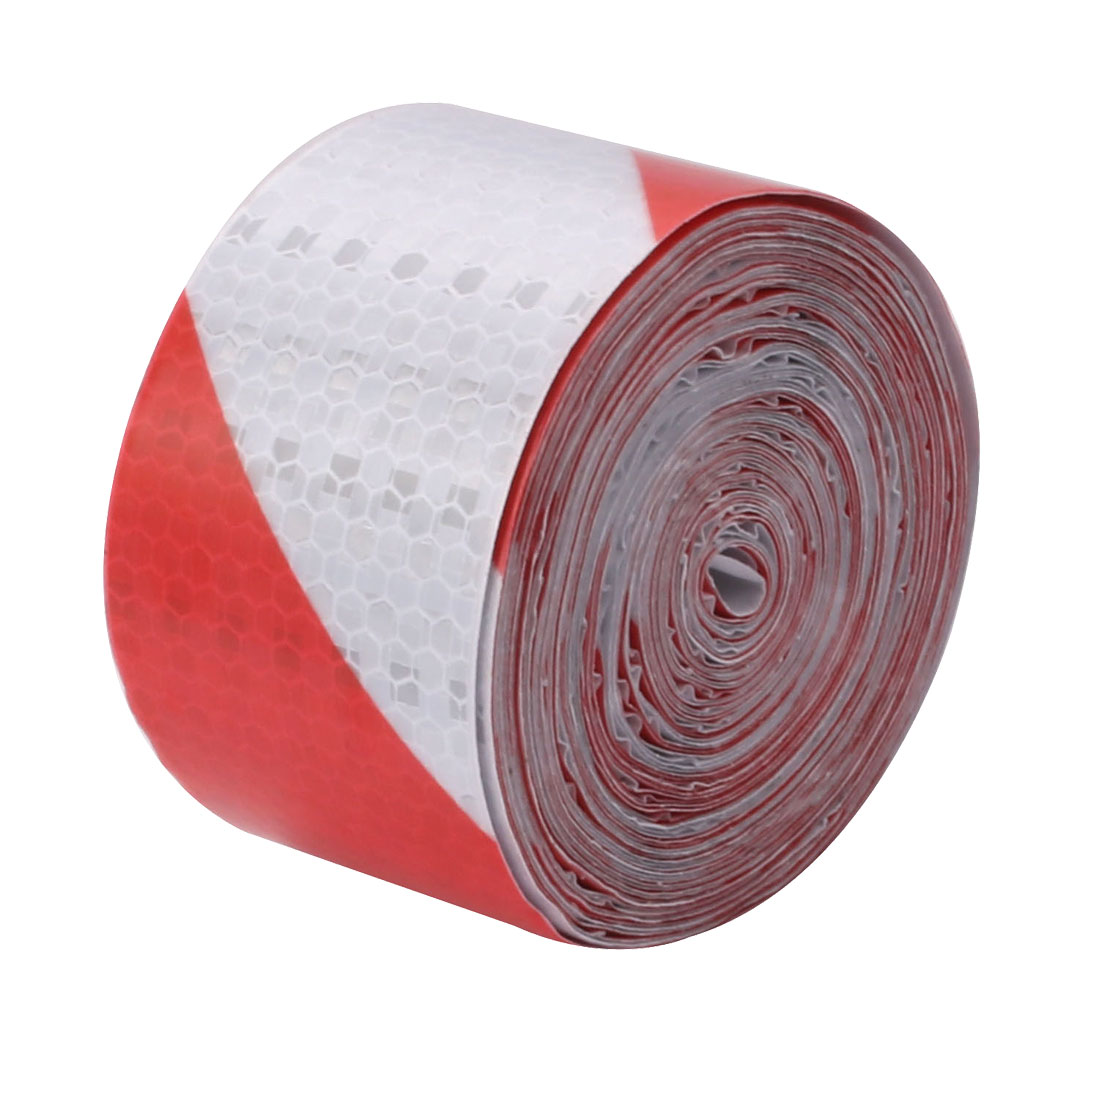 5cm Width 10M Length Single Sided Adhesive Reflective Warning Tape Red White